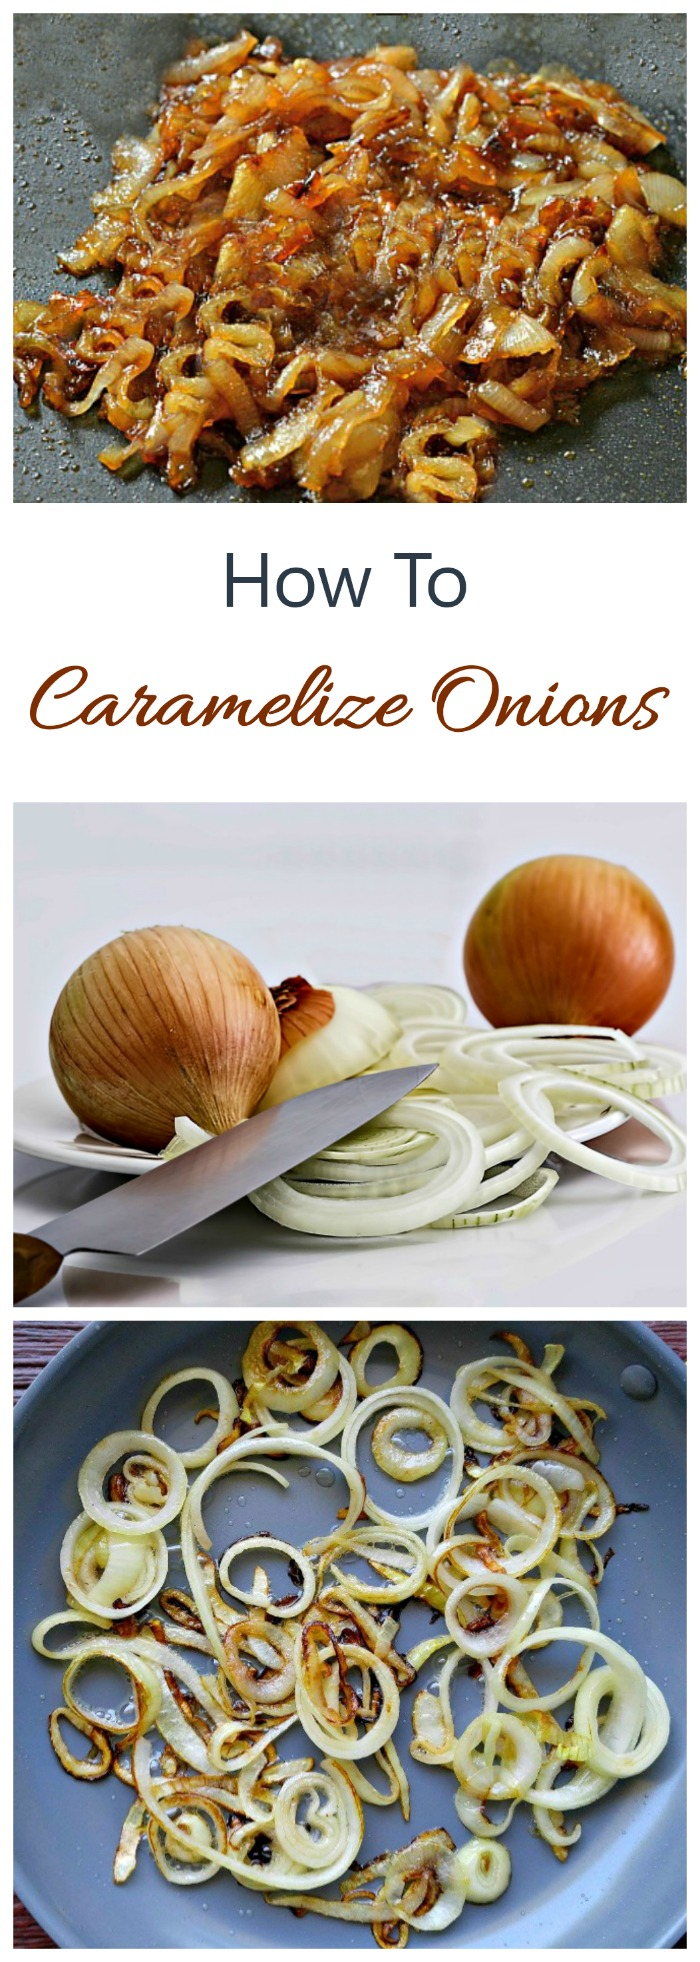 Learning how to caramelize onions is an essential cooking tip. Onions cooked this way add loads of flavor to so many dishes.